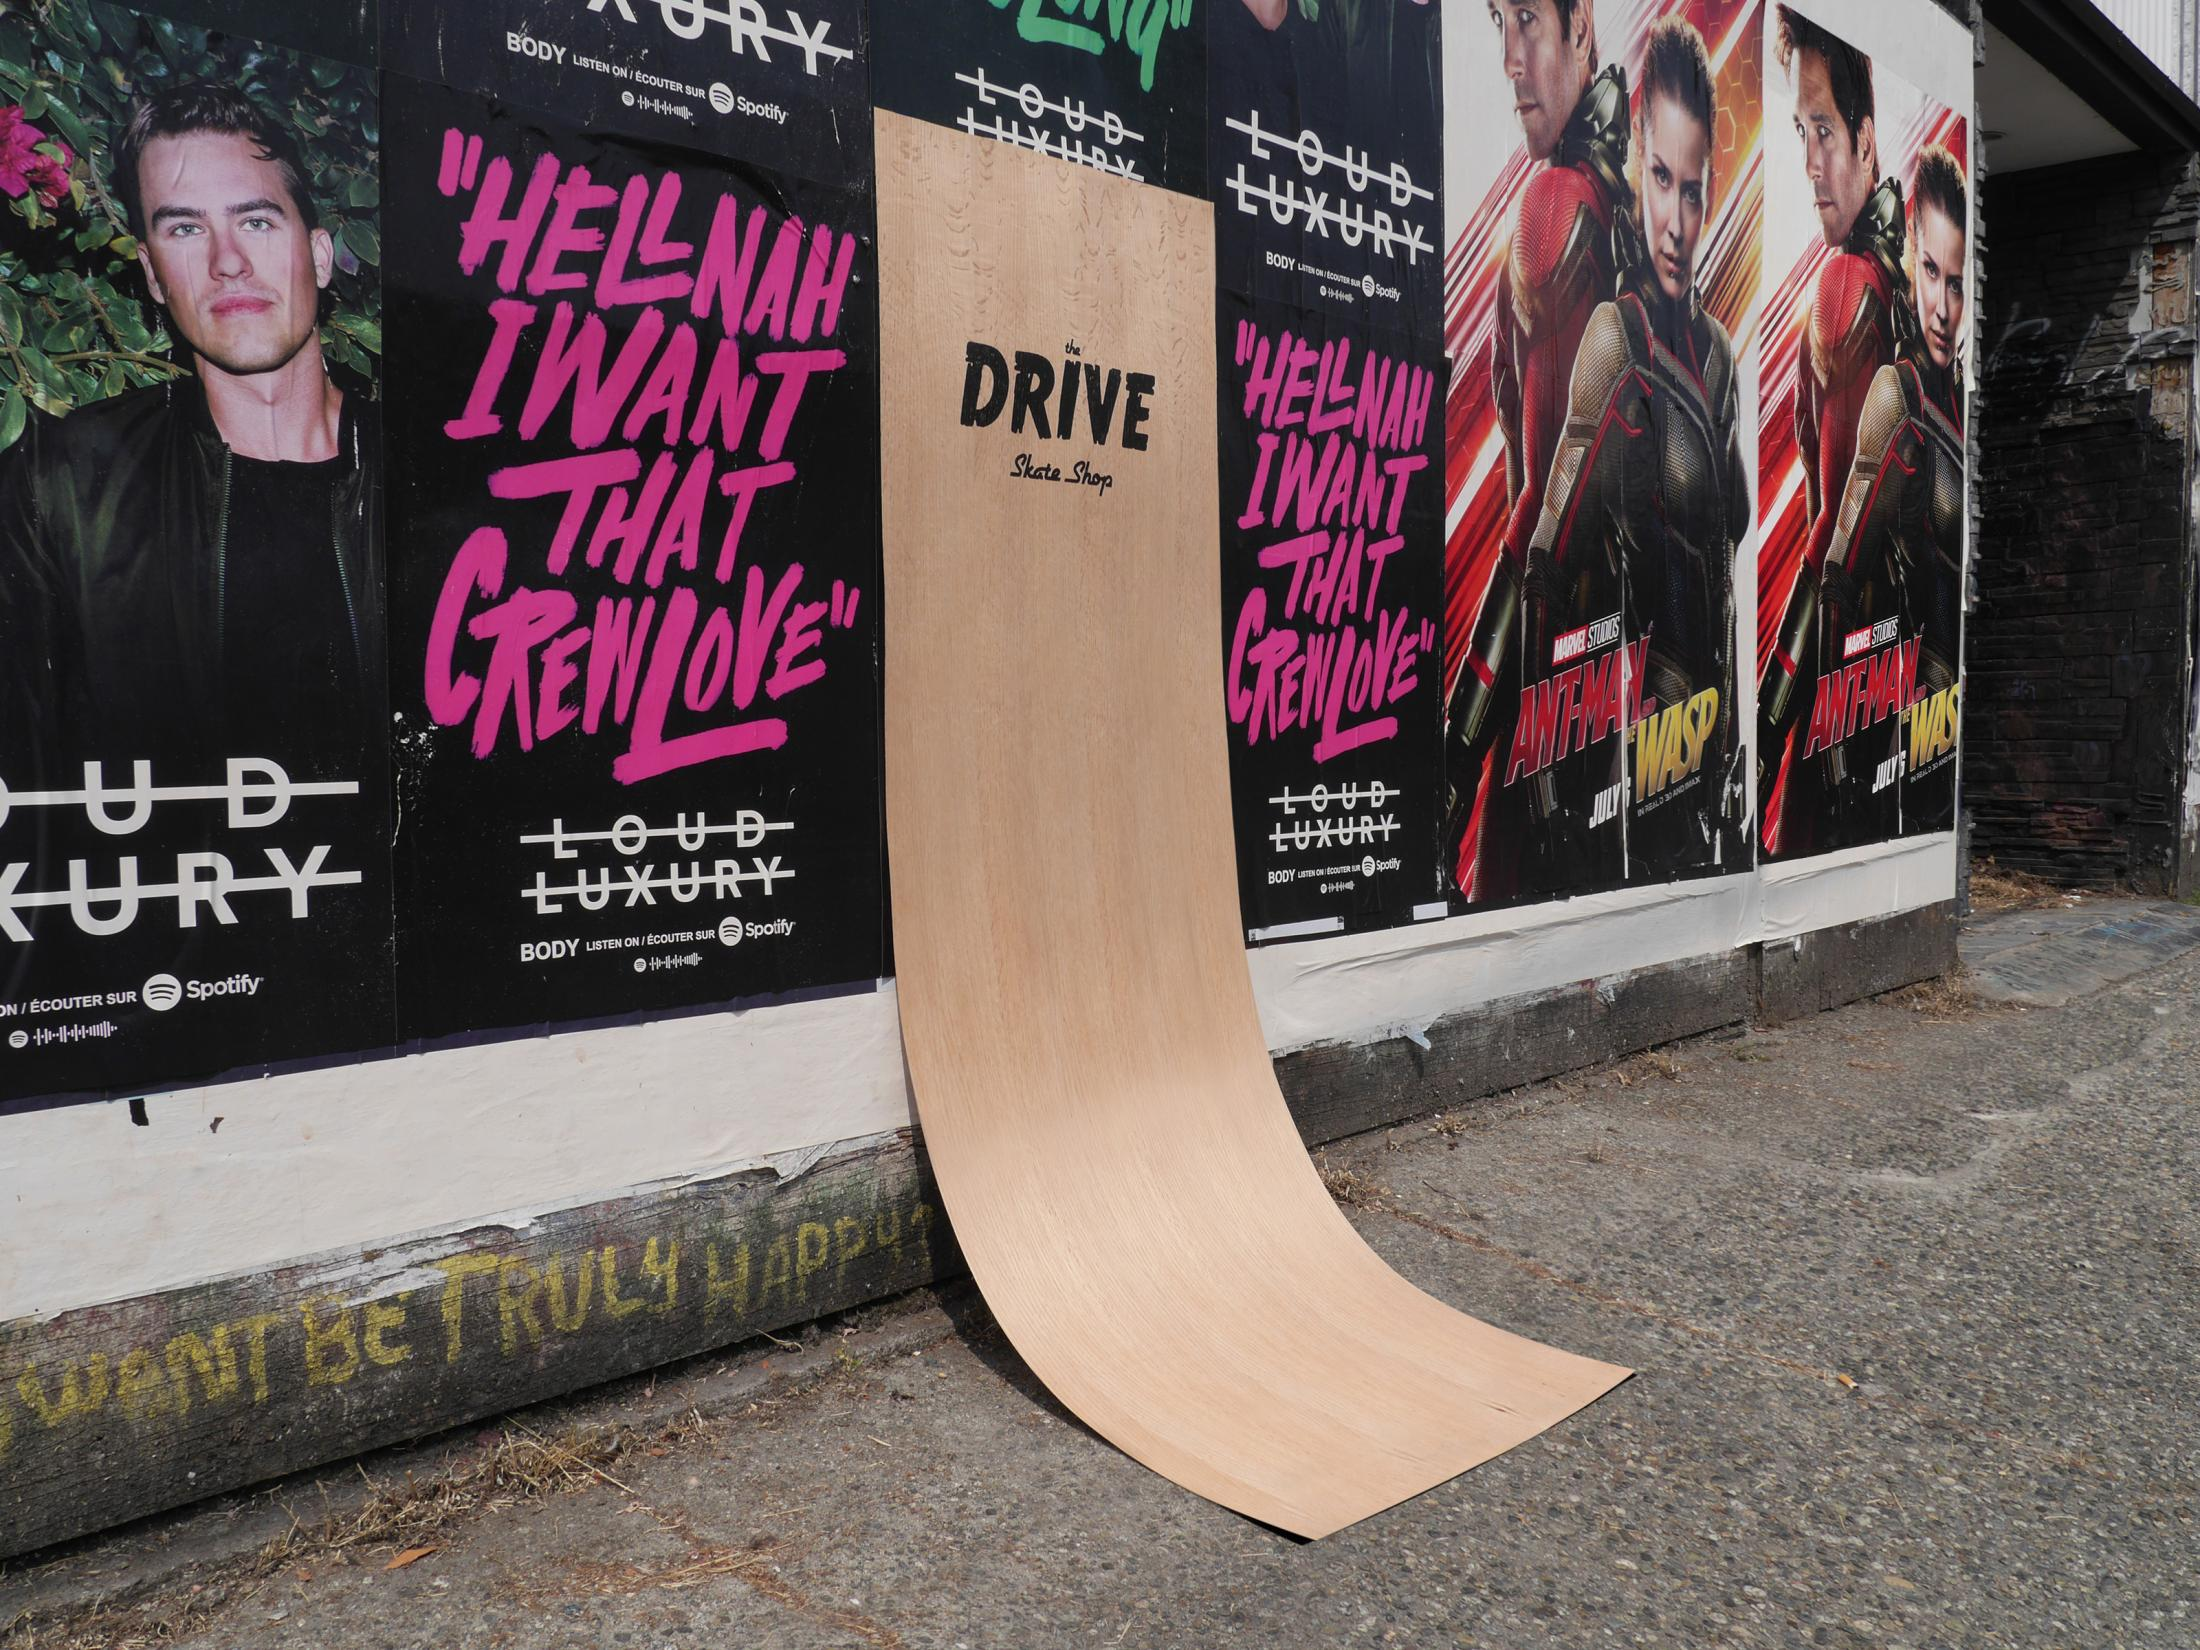 Drive Skate Shop: fully-skateable sandwich board